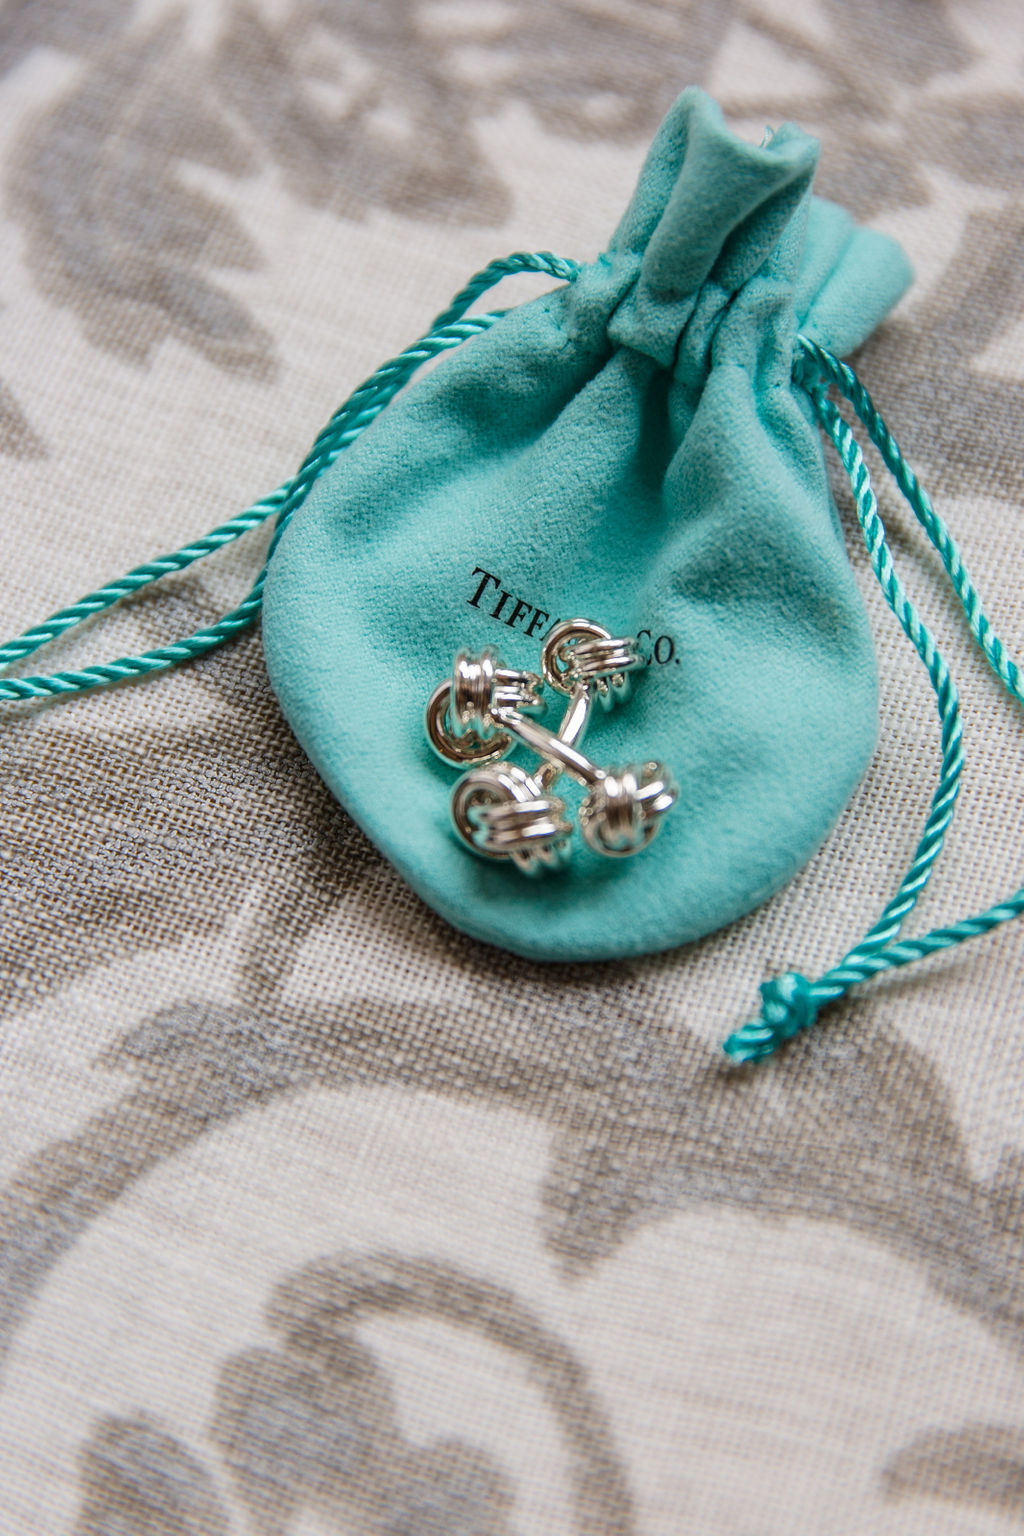 Tiffany and Co Cufflinks & Tom Ford Suit Style